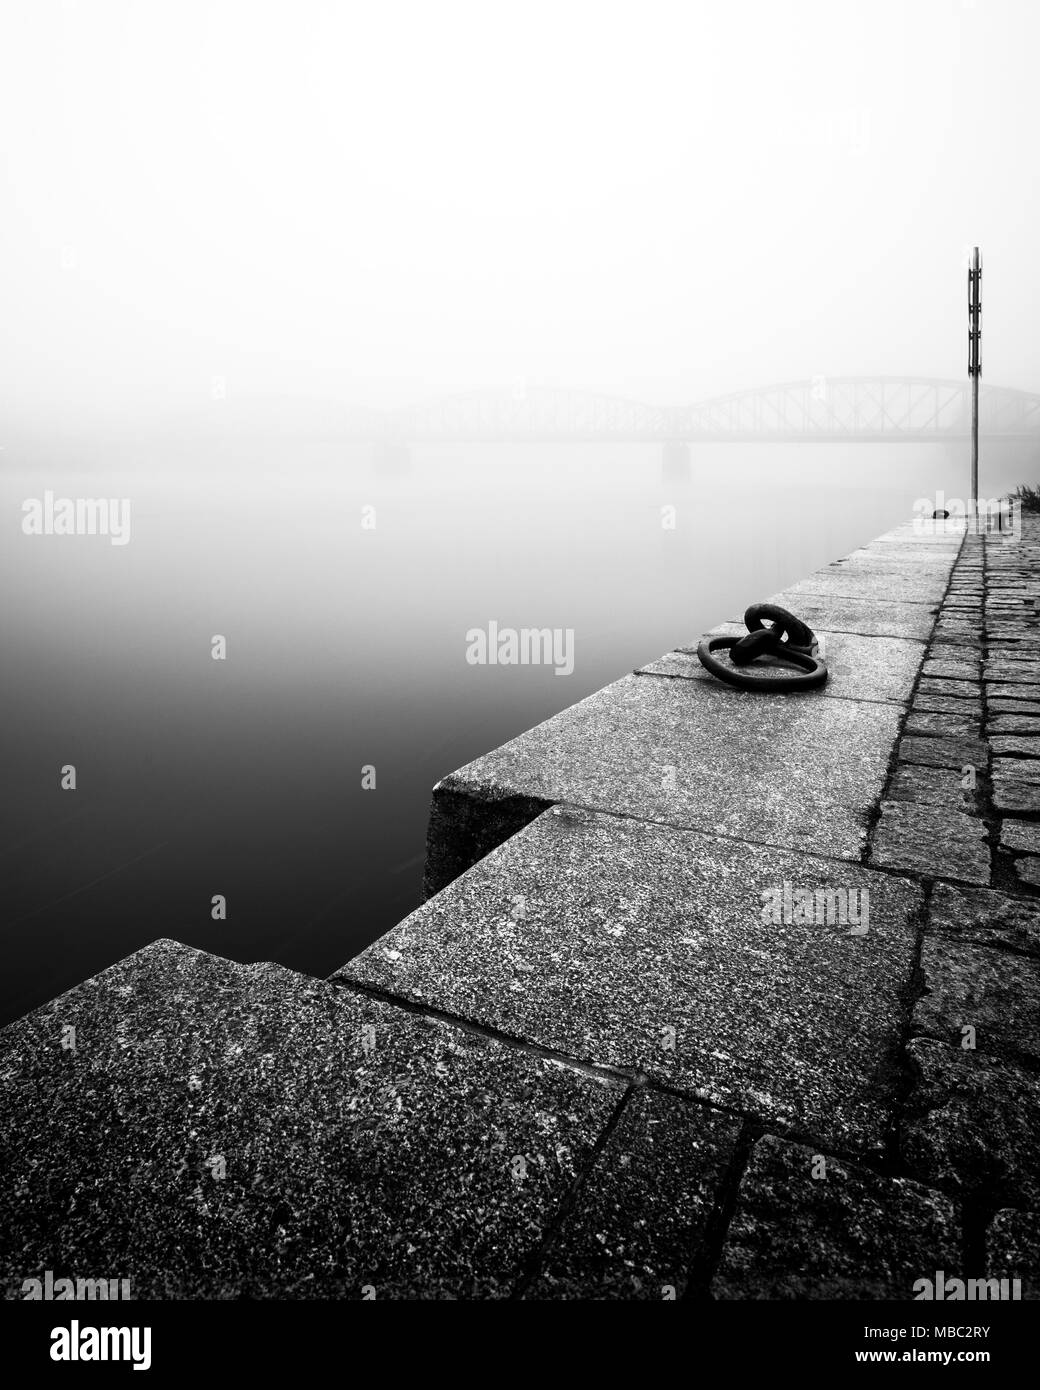 Foggy autumn mood at Vltava river. Reflection of bridge in water. Detail of riverbank. Black and white atmosphere, Prague, Czech republic - Stock Image